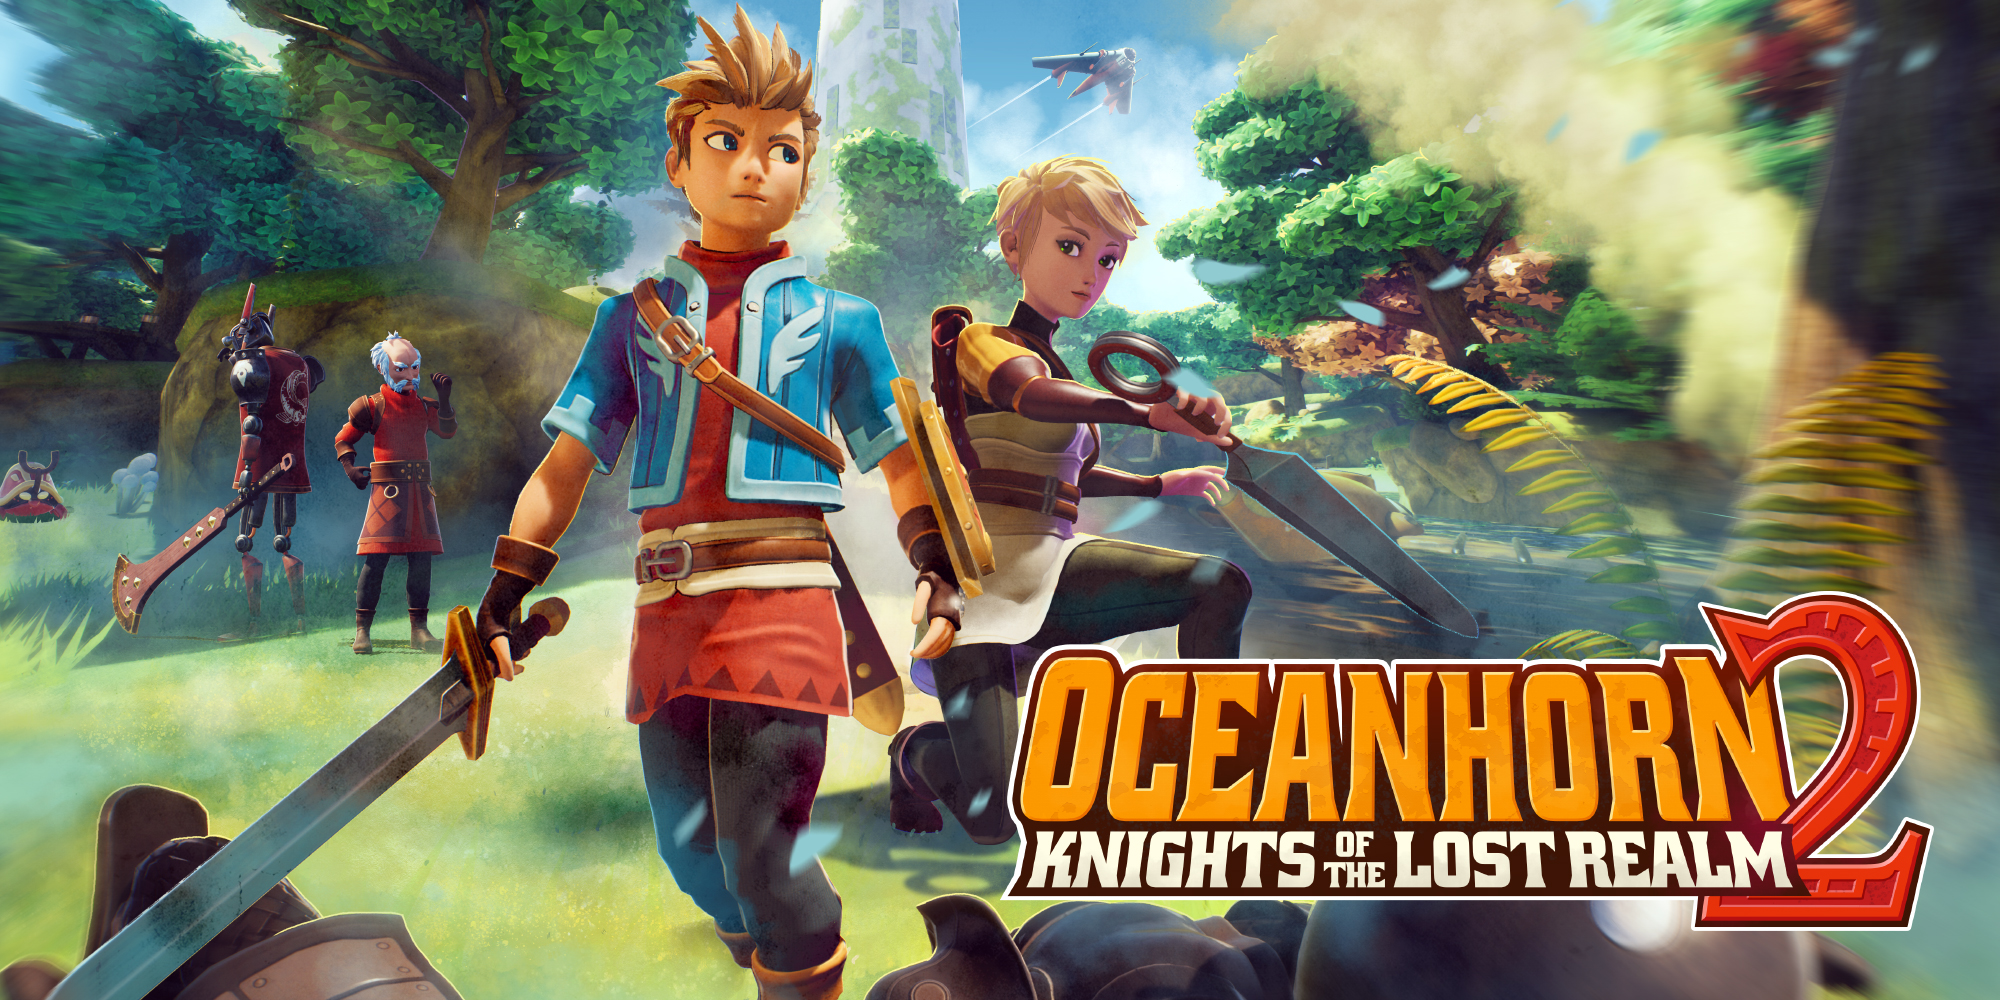 [Análisis] Oceanhorn 2: Knights of the Lost Realm